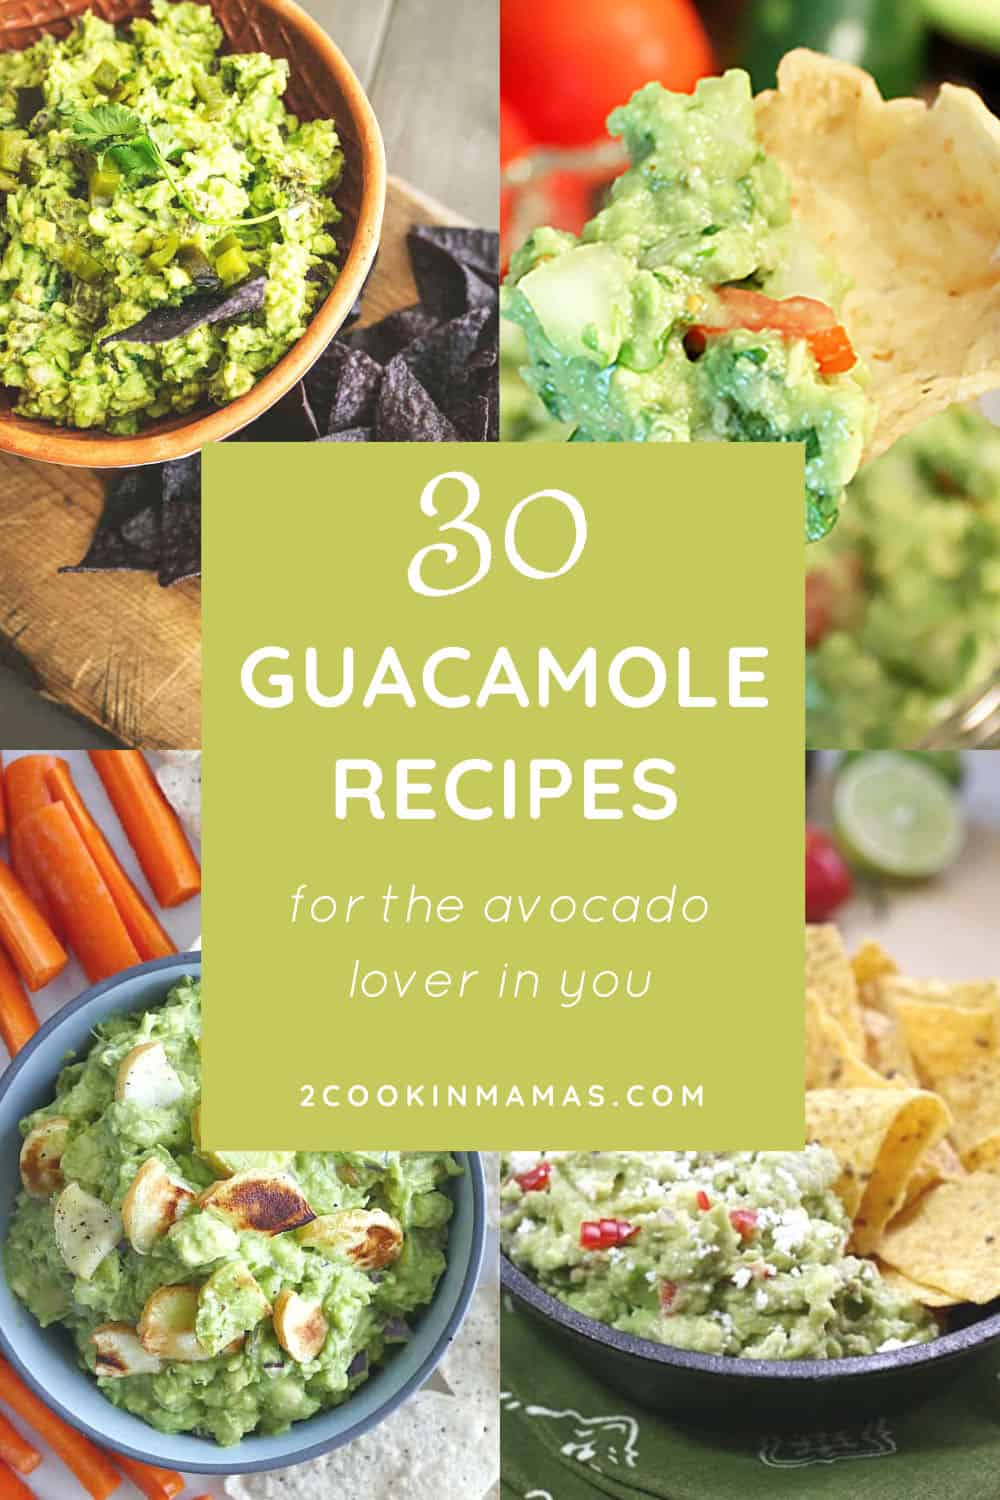 4 guacamole photos with text overlay stating 30 guacamole recipes for the avocado lover in you.